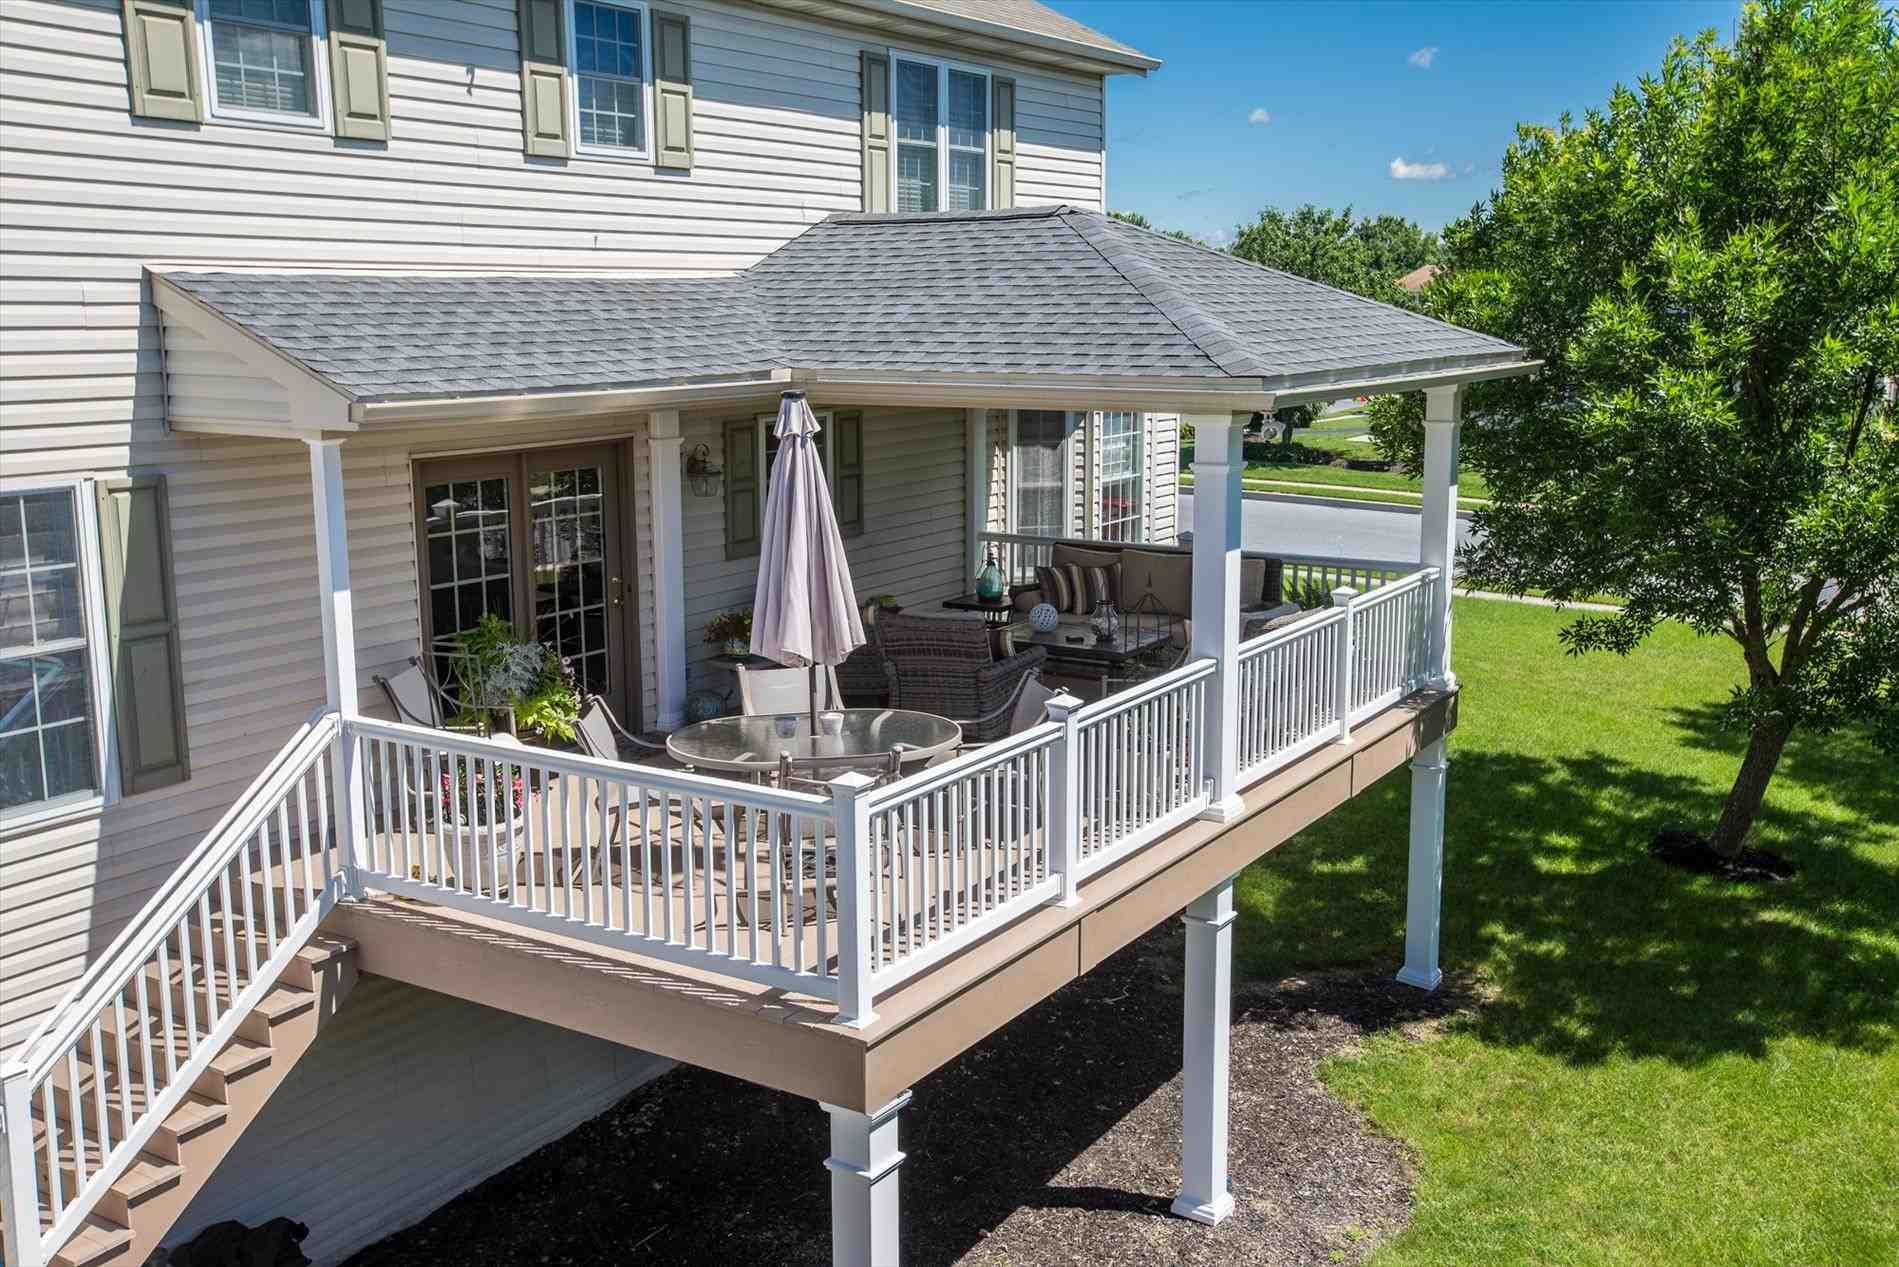 Partially Covered Deck Ideas Simple Clear Outdoor Covered Deck Ideas Back Yard Covered Small Deck Ideas Diy Porch Design Building A Deck Deck Addition